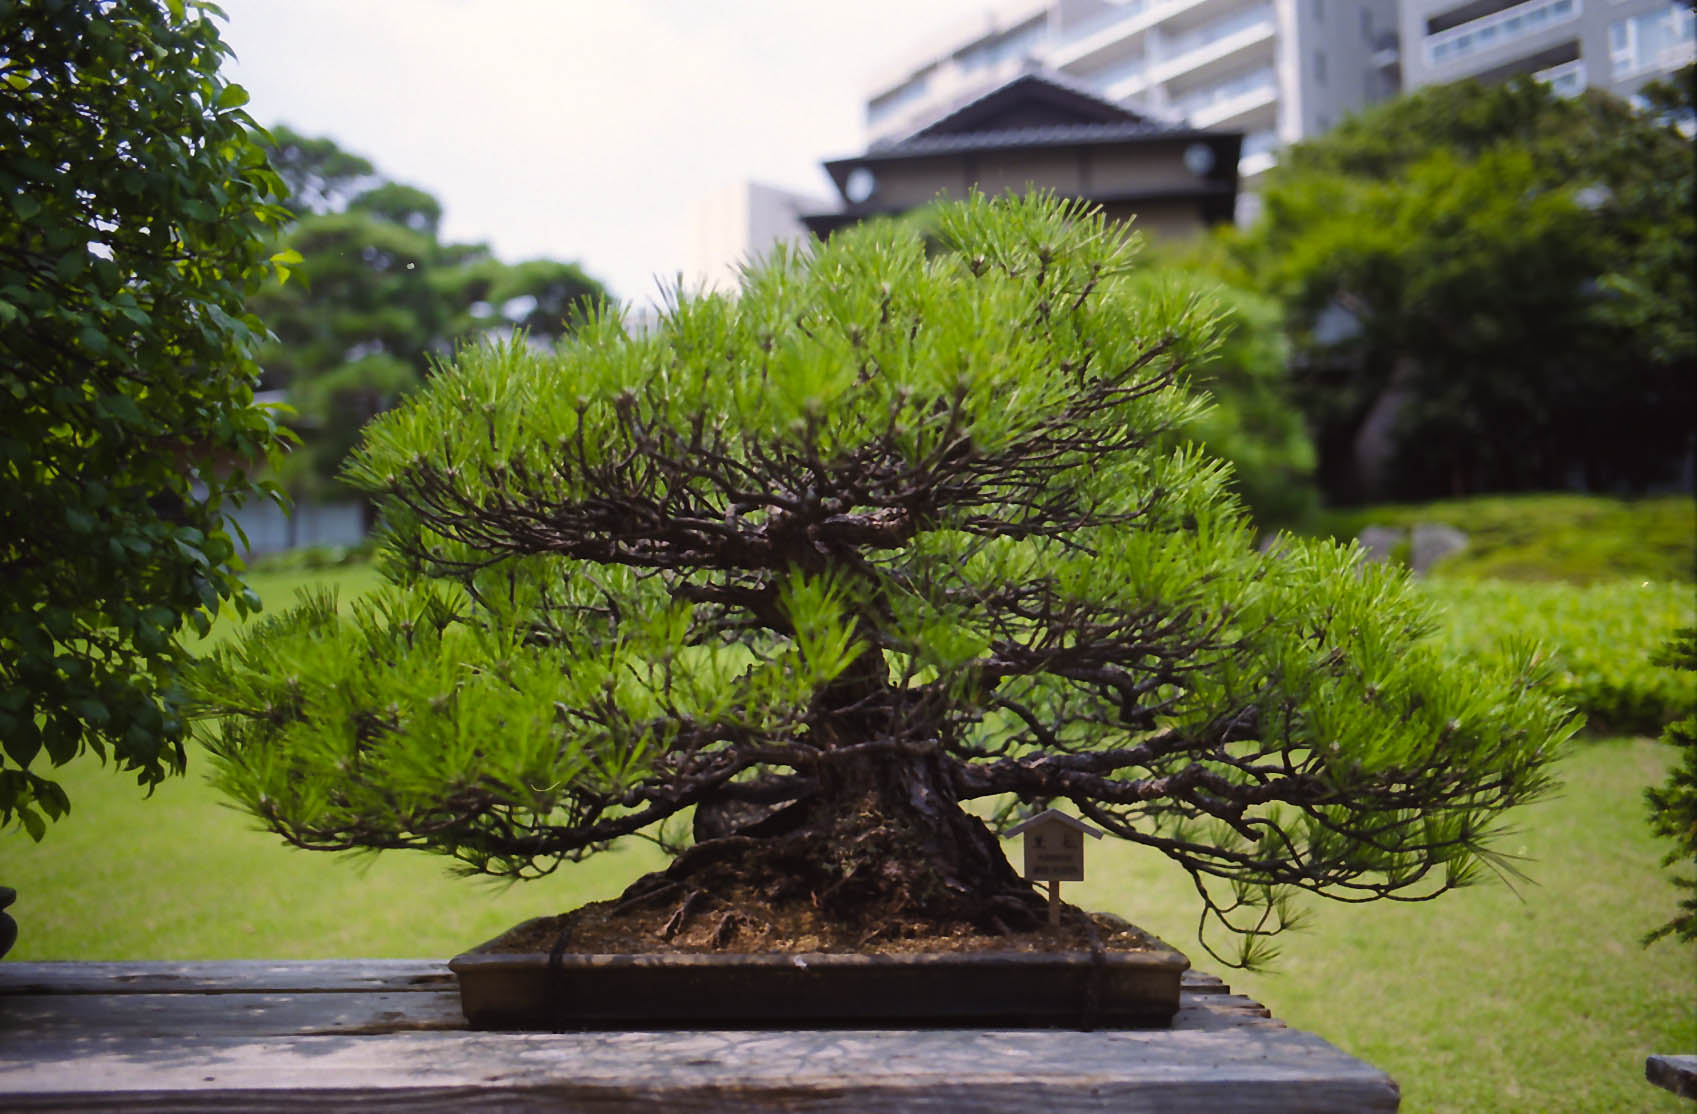 Happo-en Bonsai